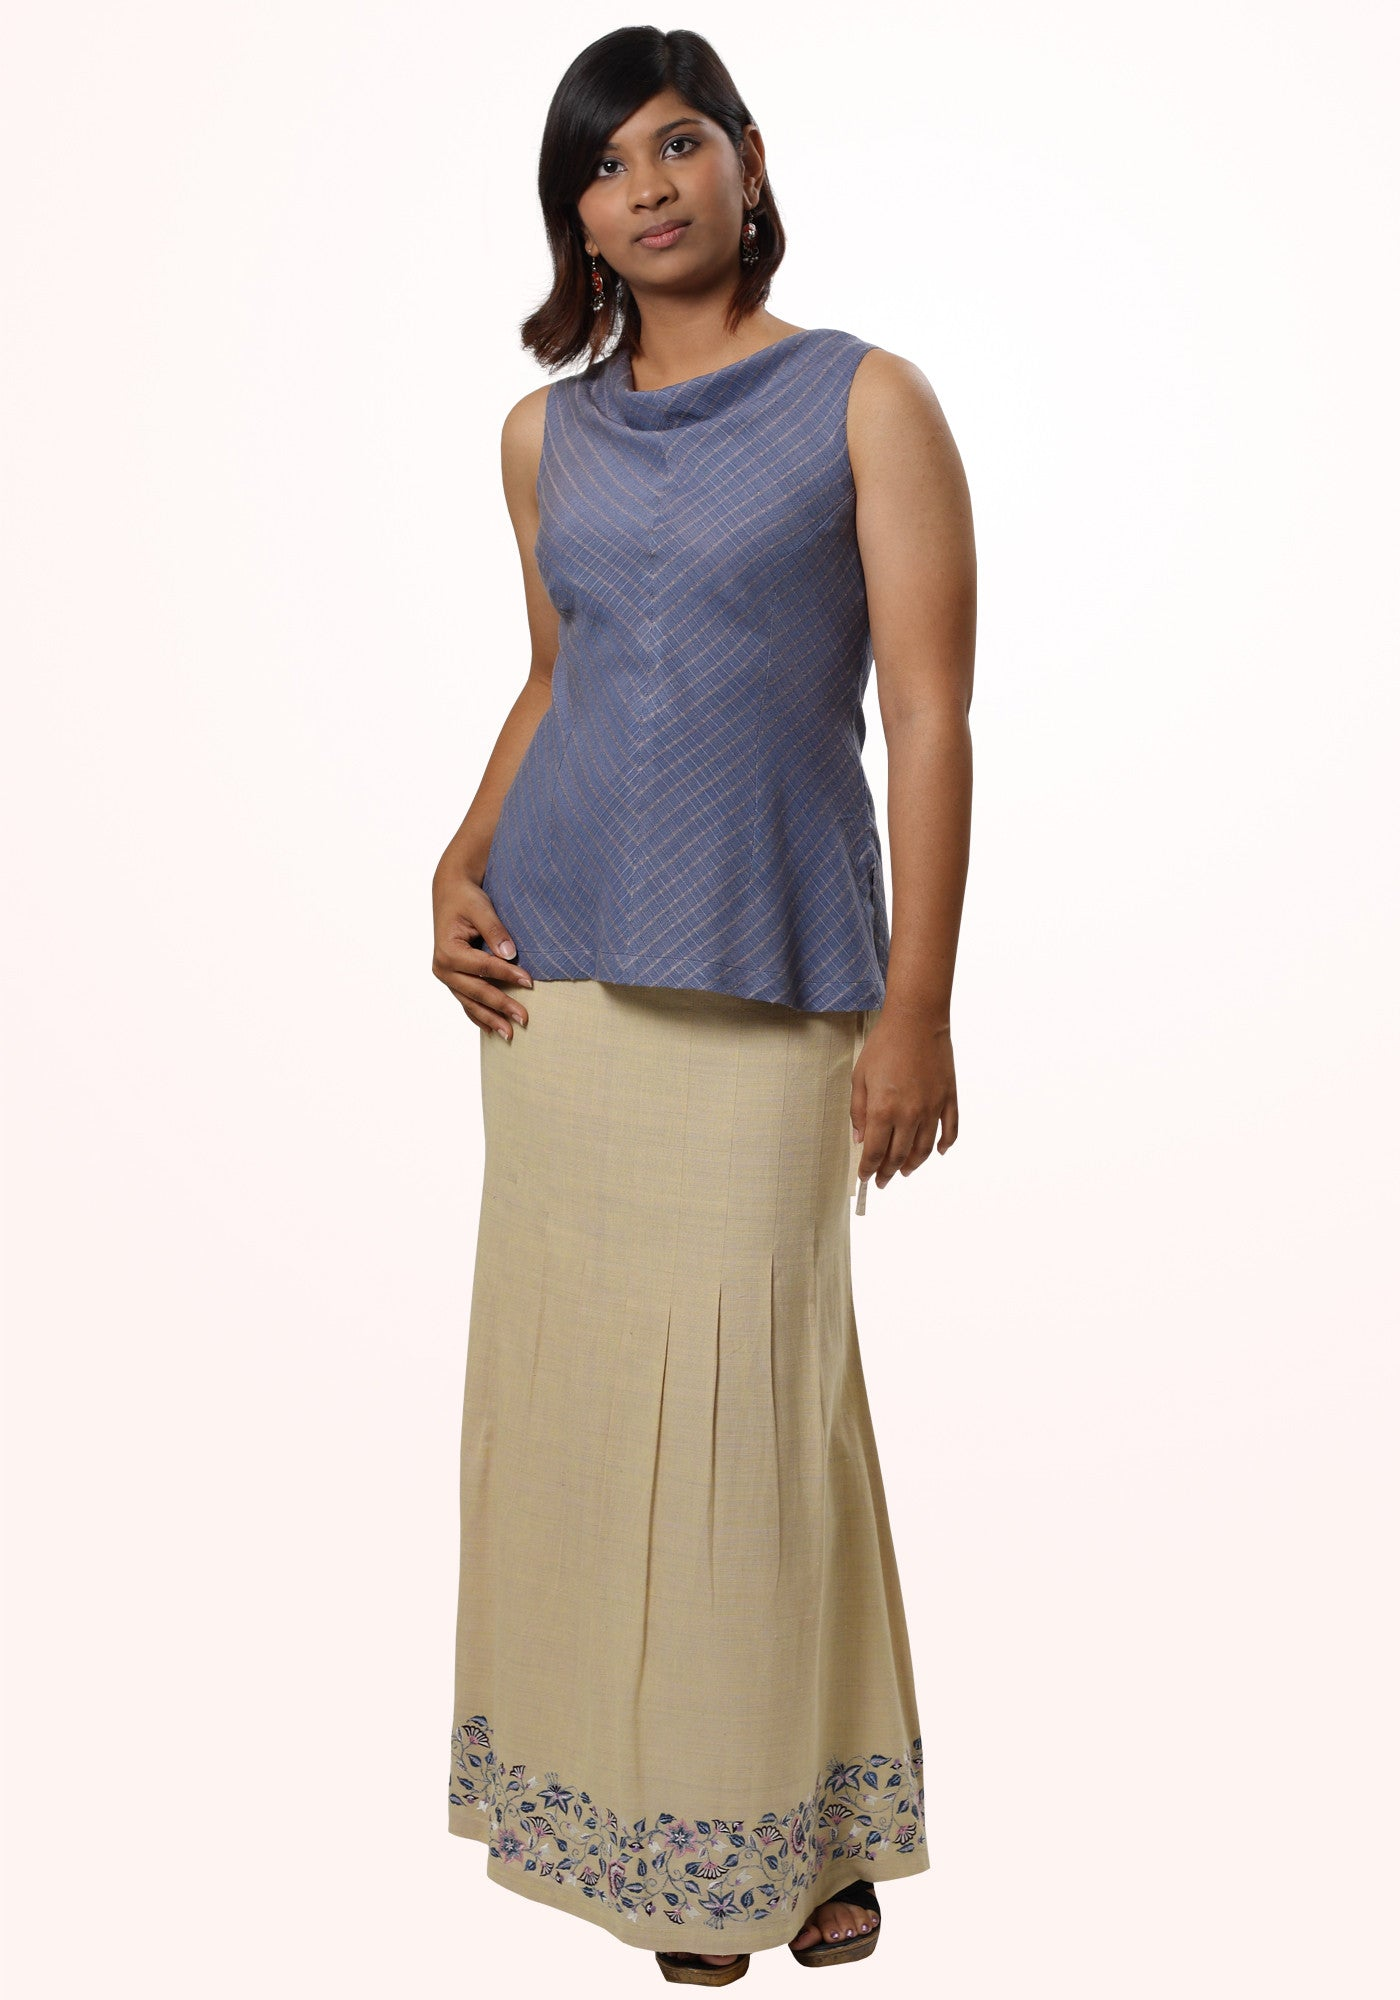 Ahimsa silk handwoven short top - MINC ecofashion